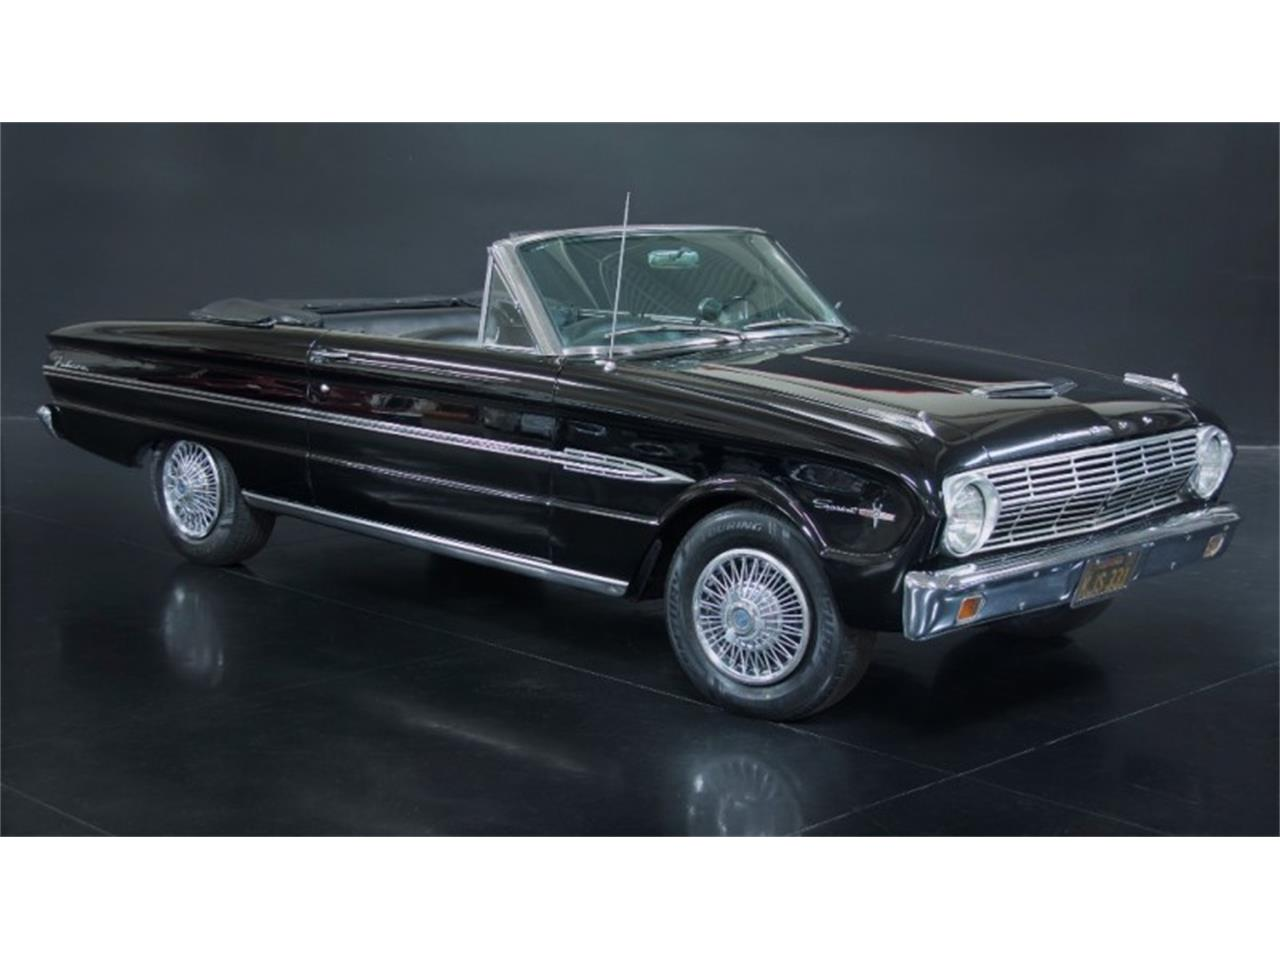 1963 Ford Falcon for sale in Milpitas, CA